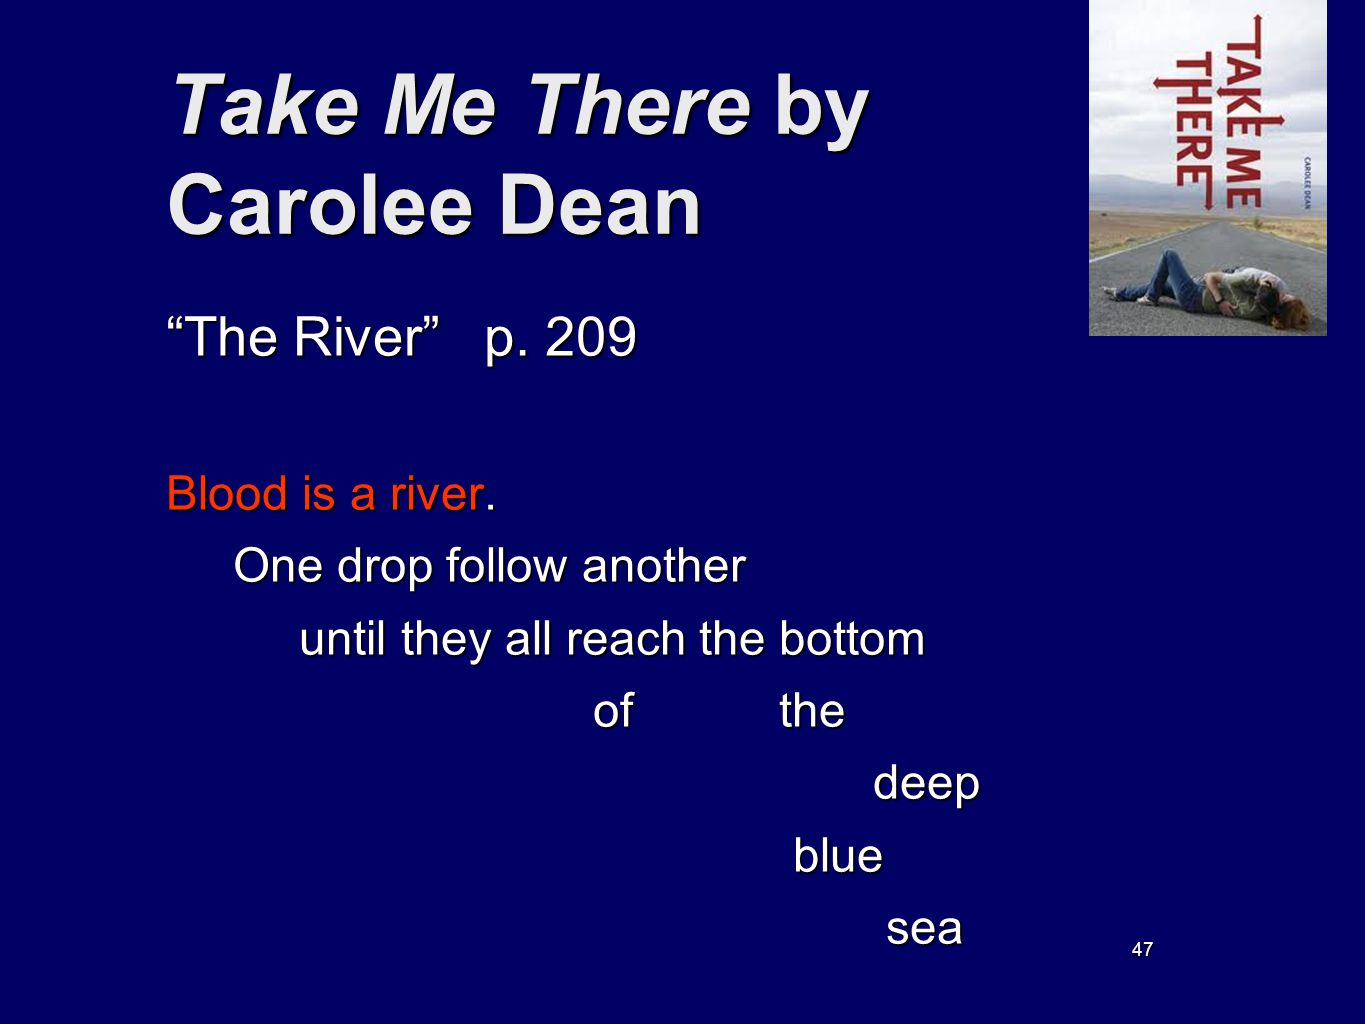 47 Take Me There by Carolee Dean The River p. 209 Blood is a river. One drop follow another One drop follow another until they all reach the bottom un